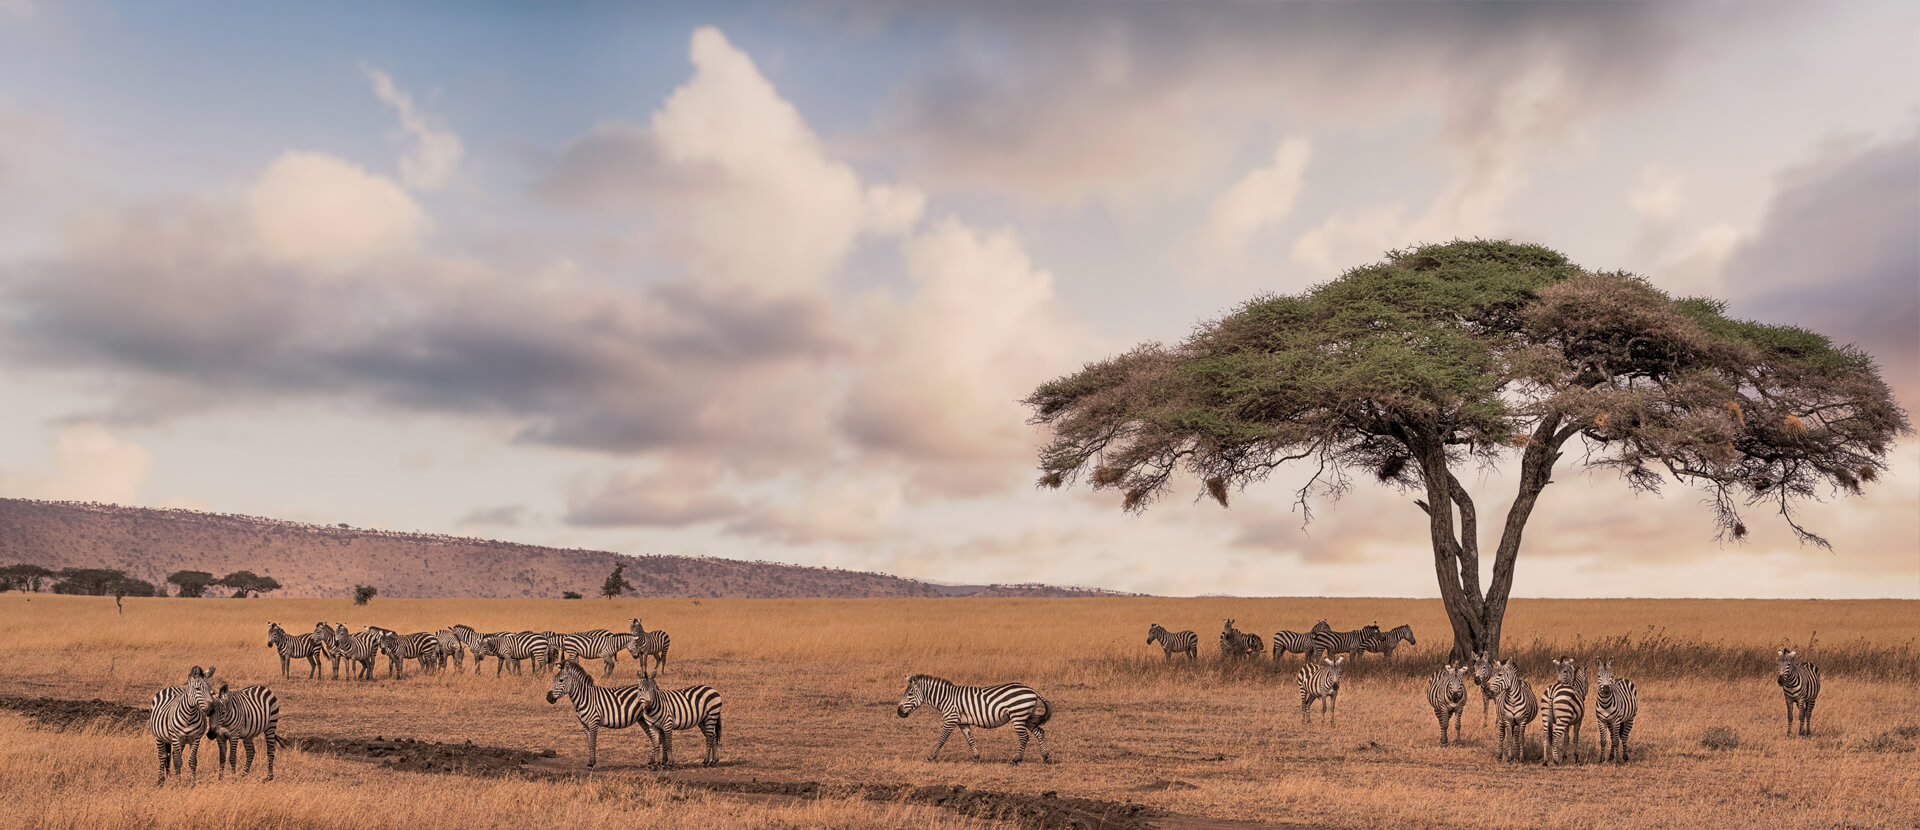 Julie's Top 5 Places to Stay in Africa